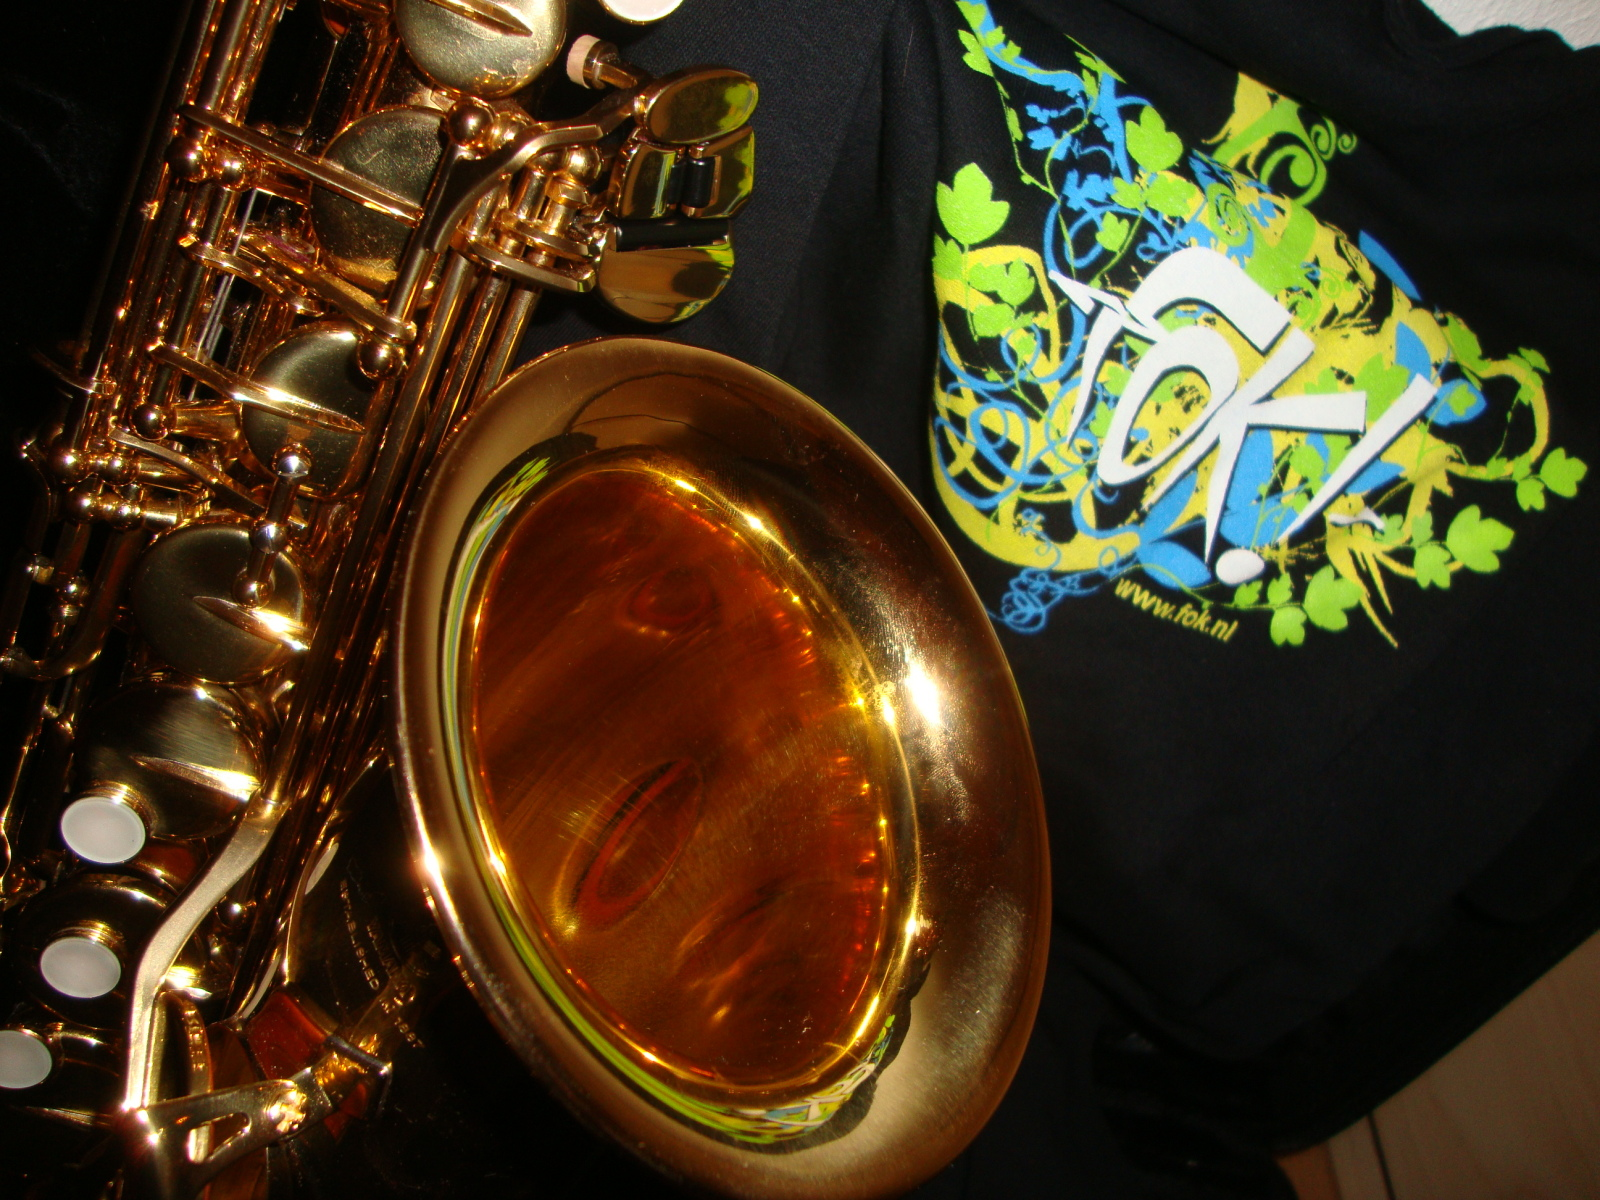 Sax en shirt van Paul